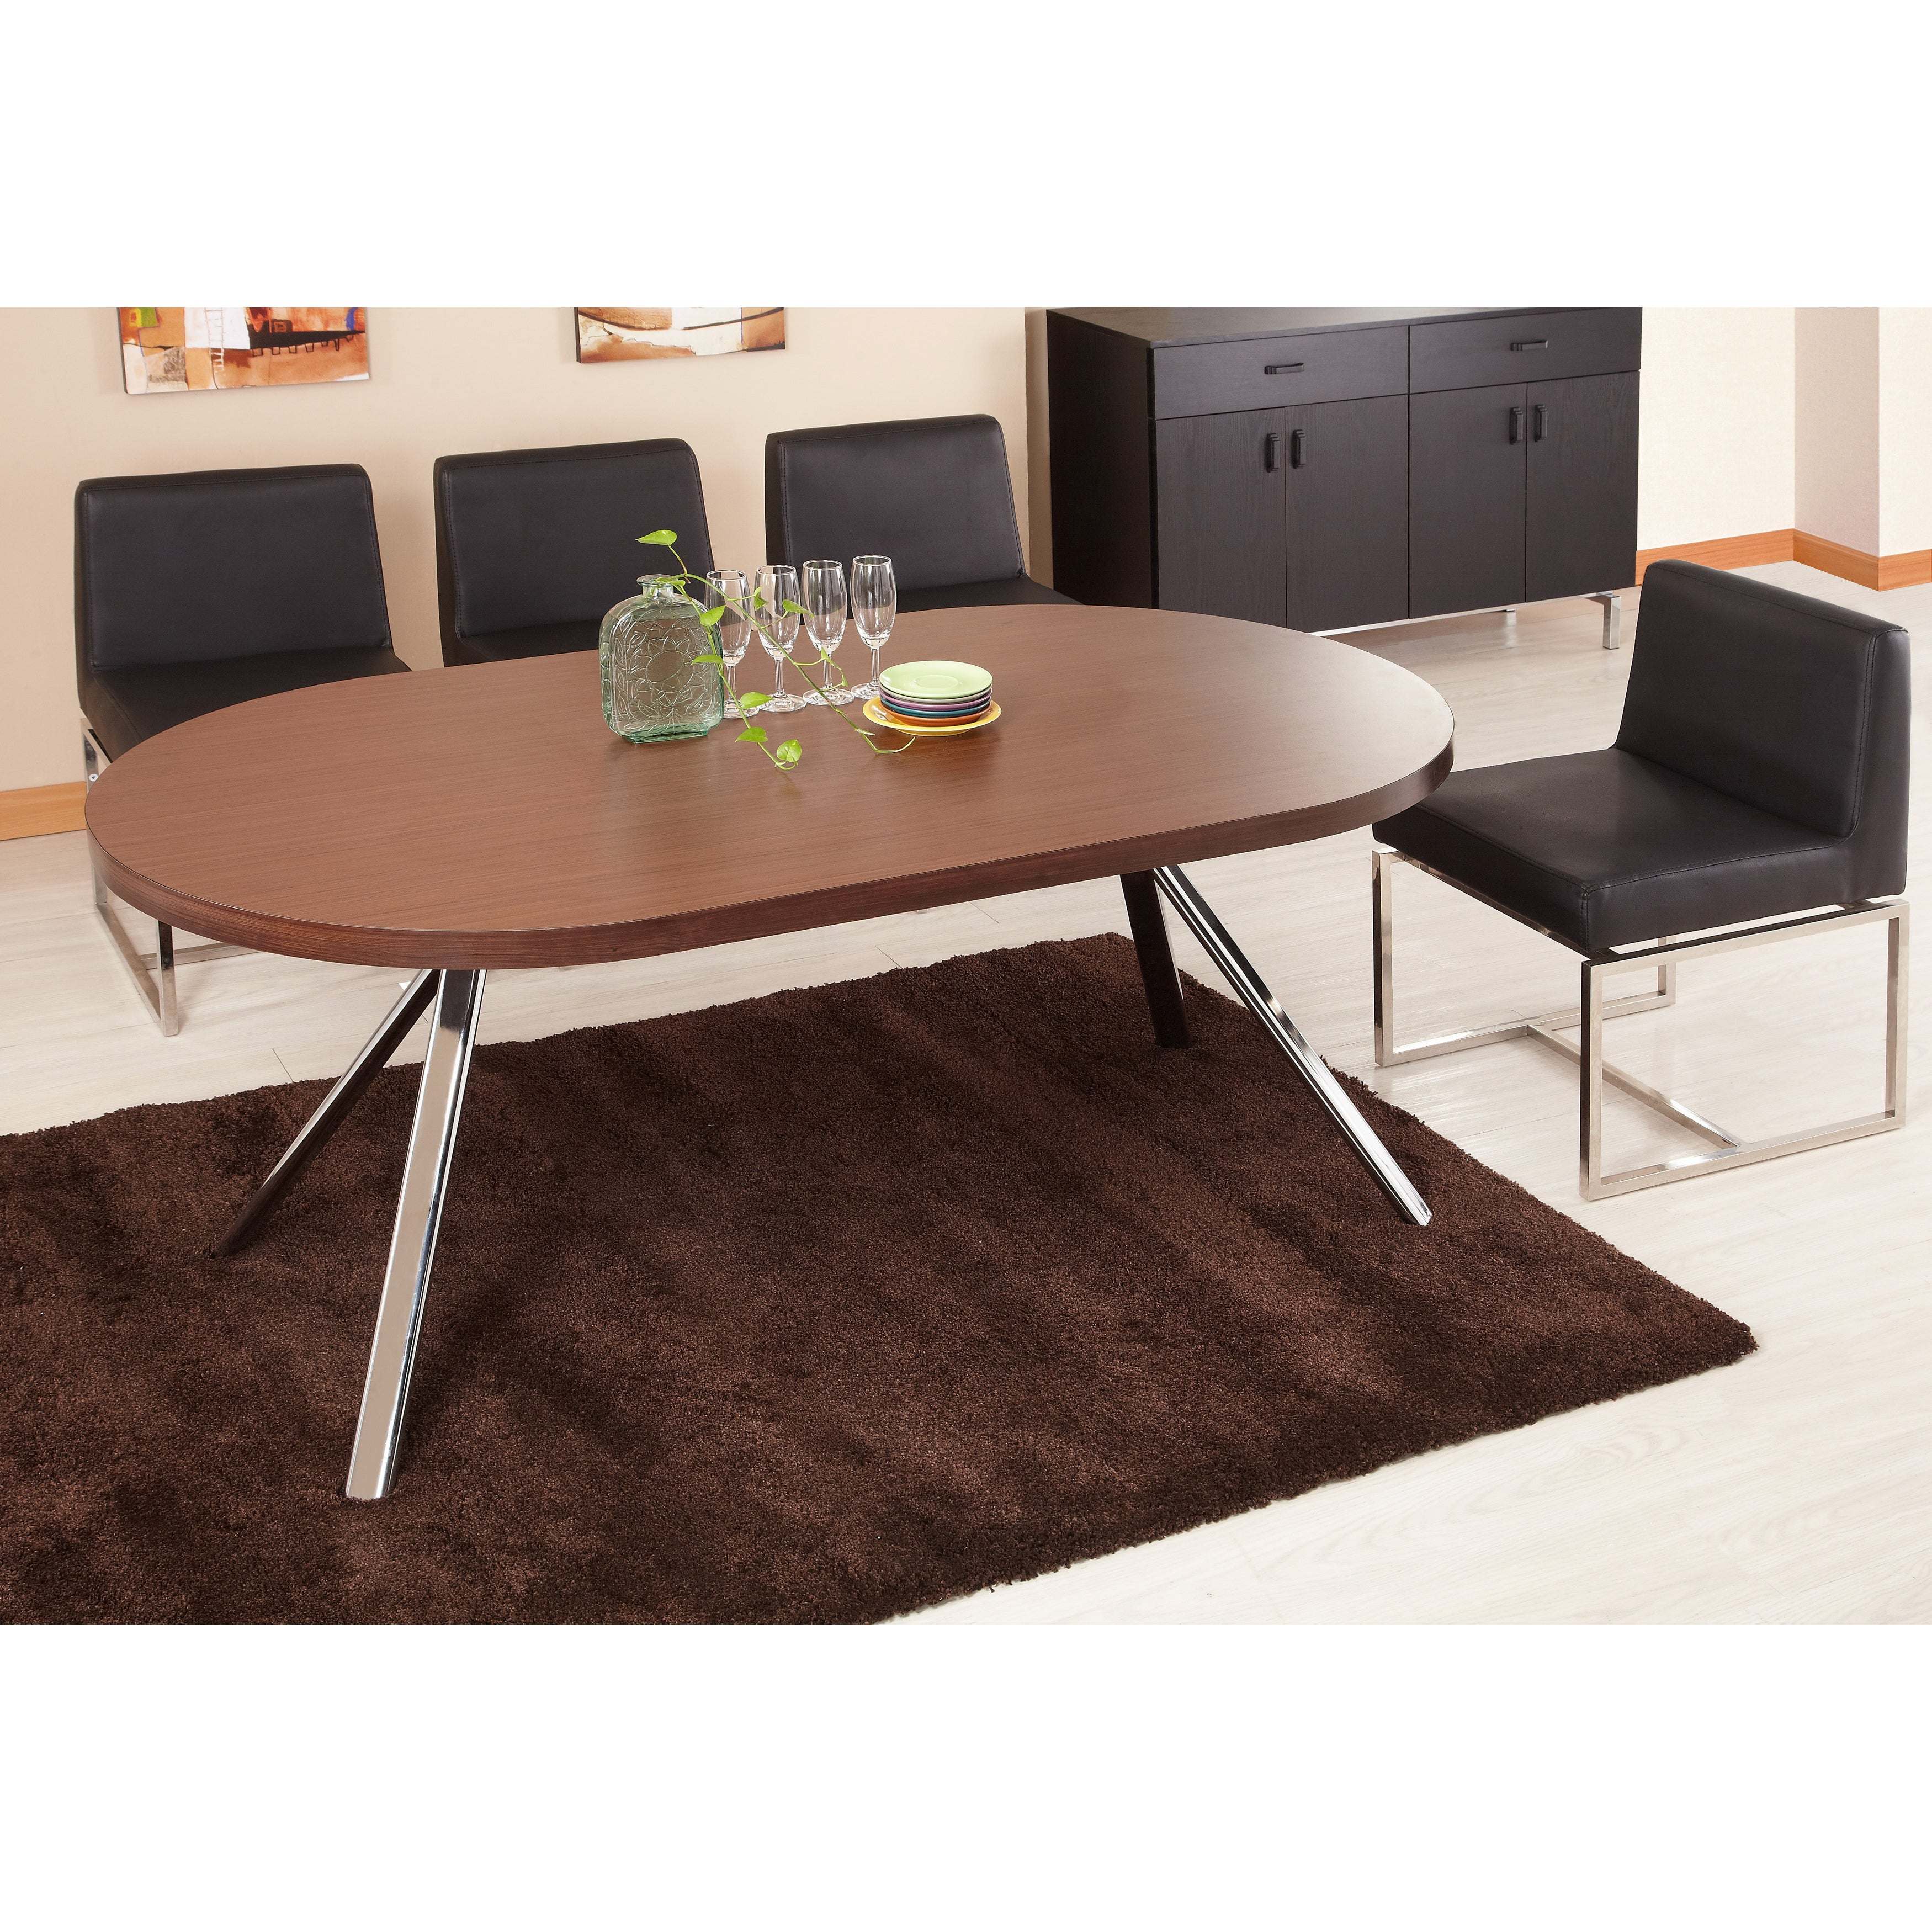 Furniture Of America Trexton Walnut Finish Dining Table Office Desk Overstock Shopping